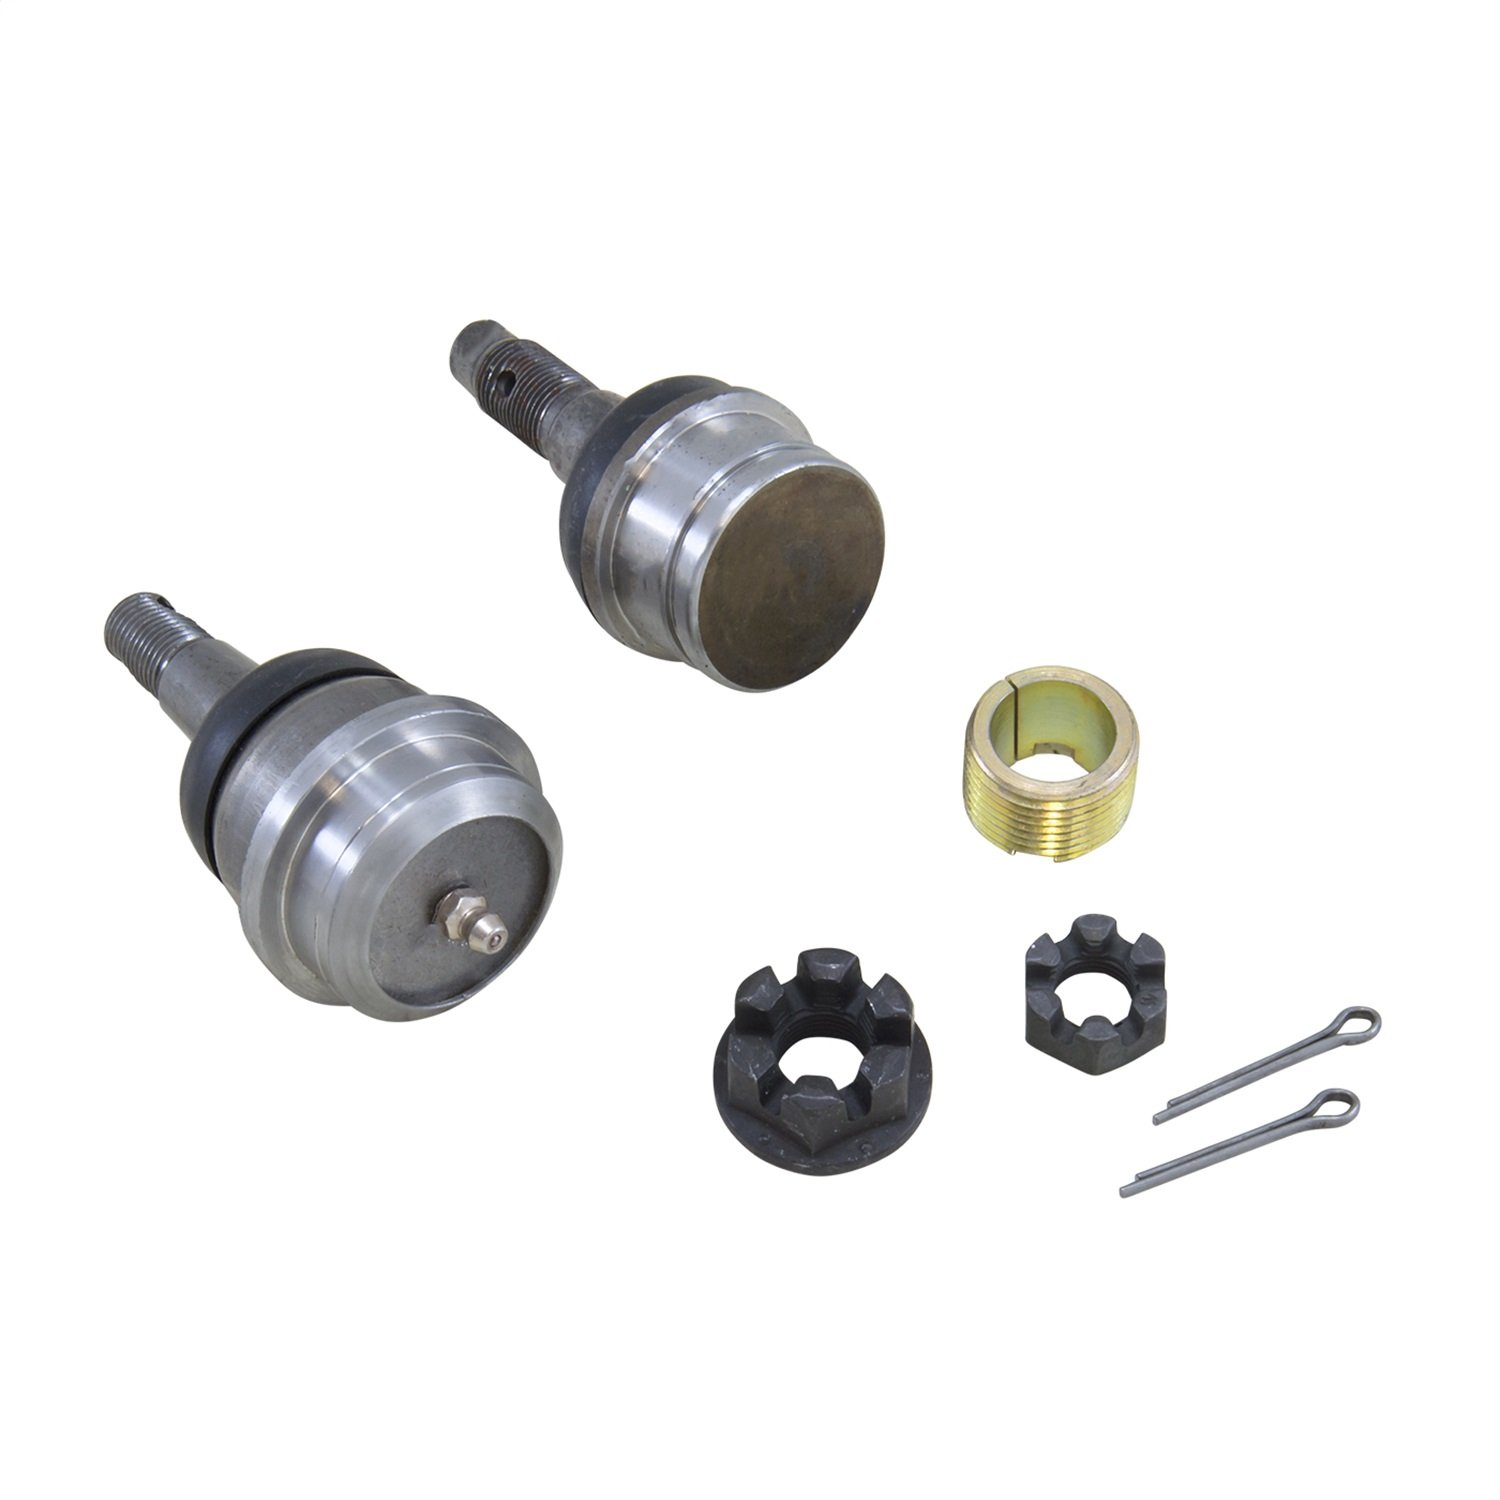 Yukon Gear & Axle (YSPBJ-015) Ball Joint Kit for Dana Super 30 Differential